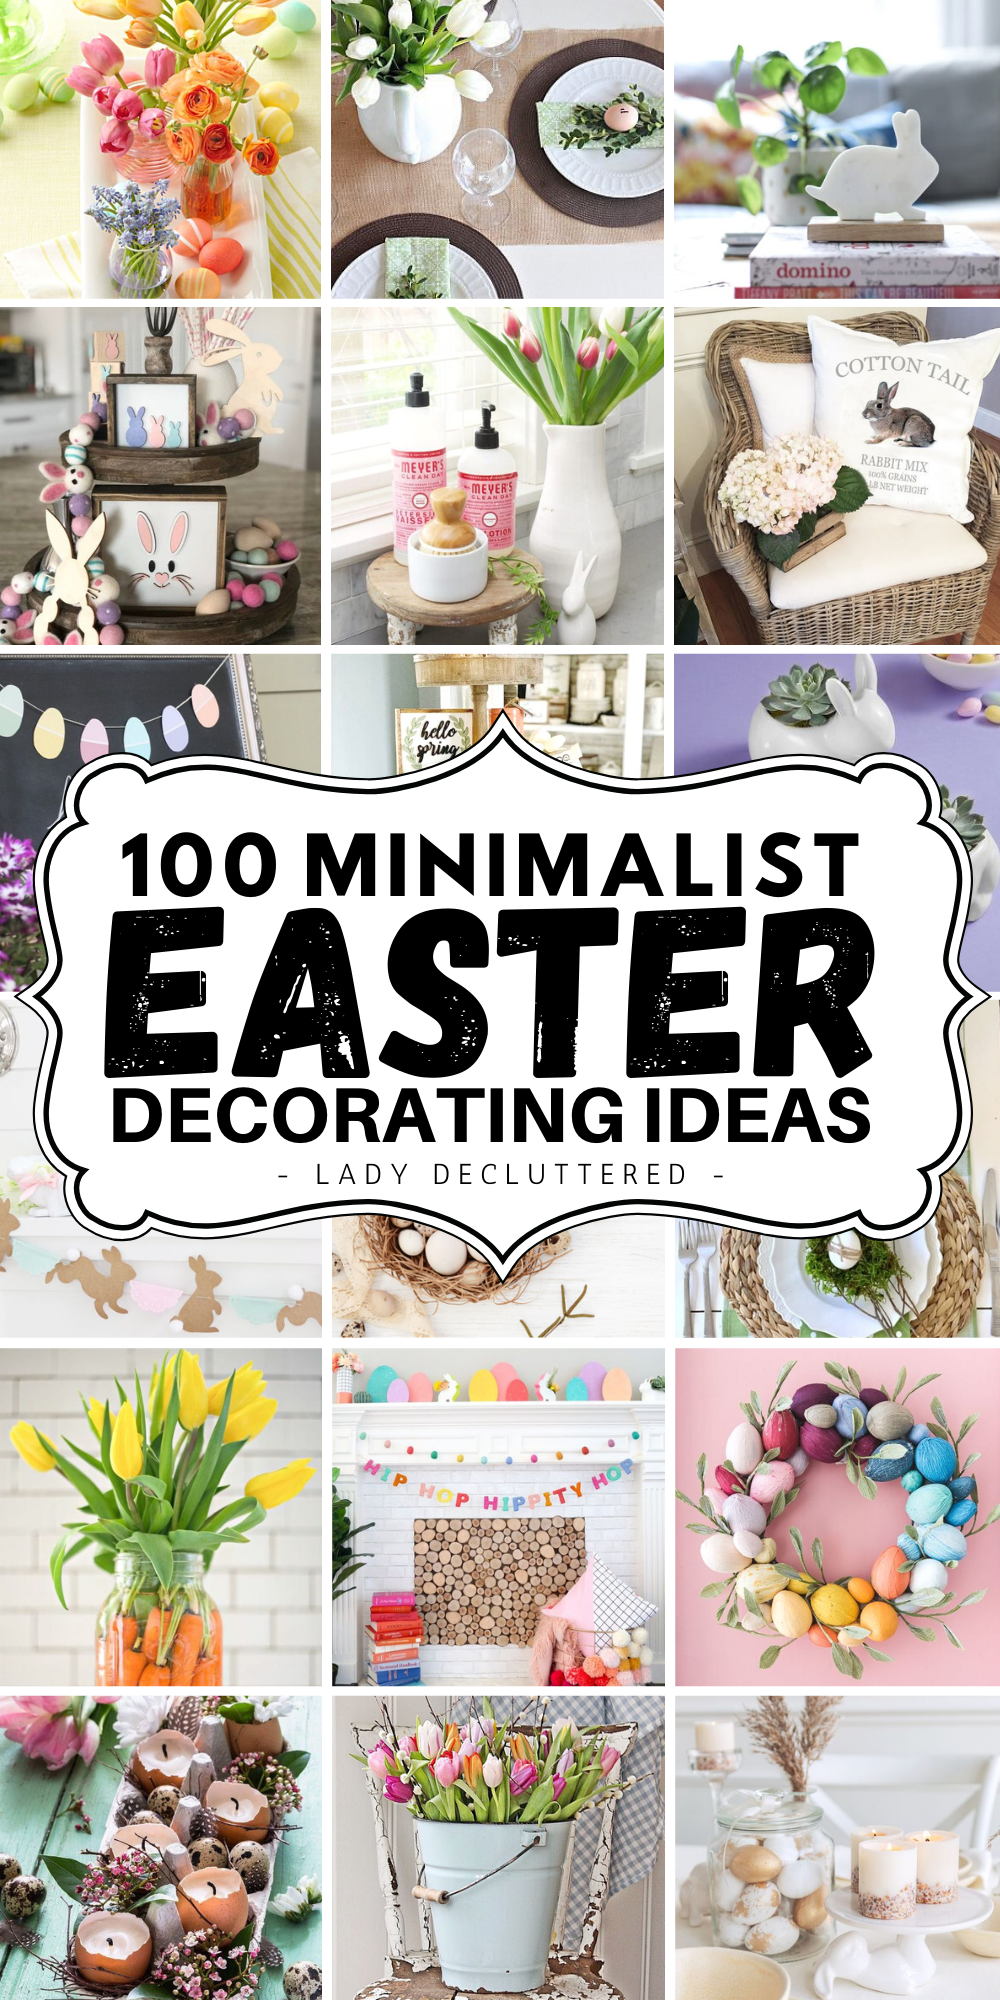 100 Simple Easter Decor Ideas For 2021 Lady Decluttered In 2021 Simple Easter Decor Easy Easter Easter Front Porch Decor